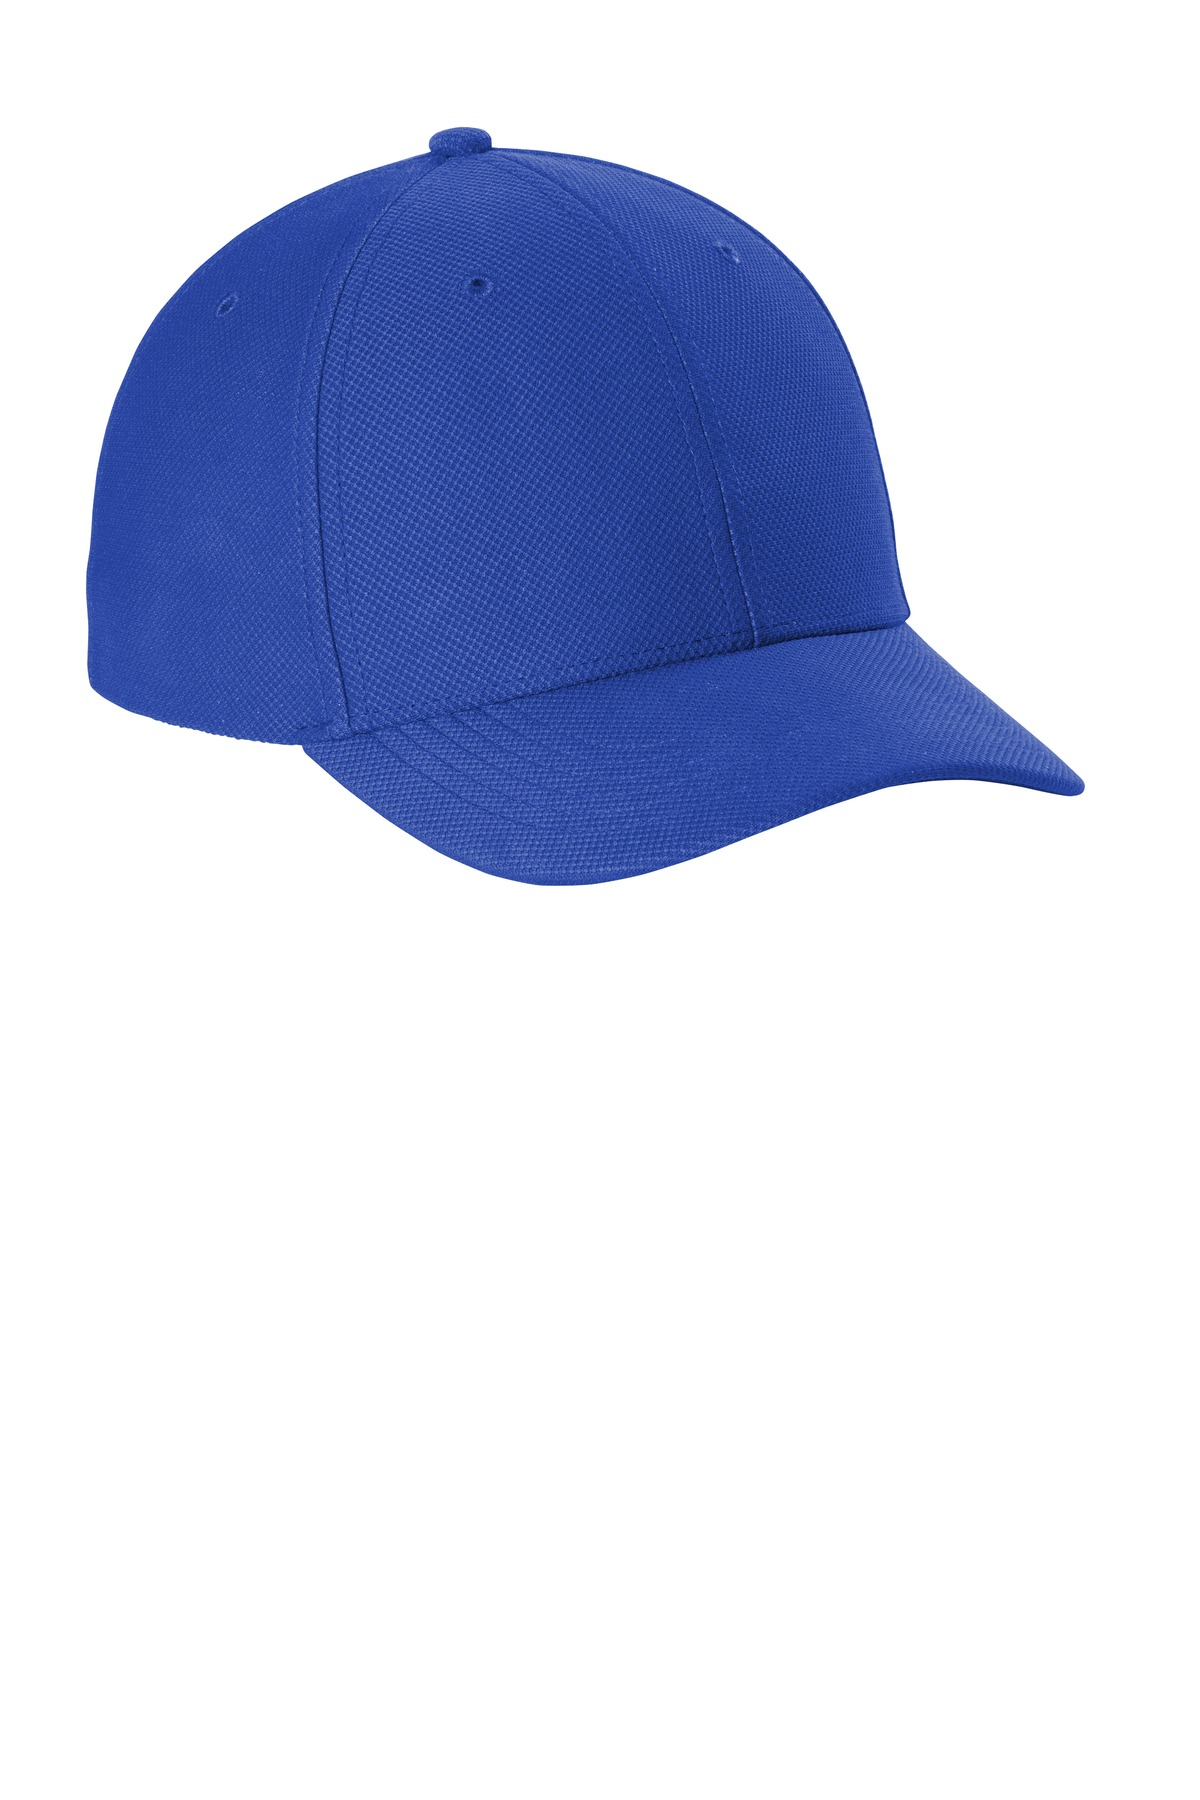 Sport-Tek  ®  Action Snapback Cap. STC50 - True Royal